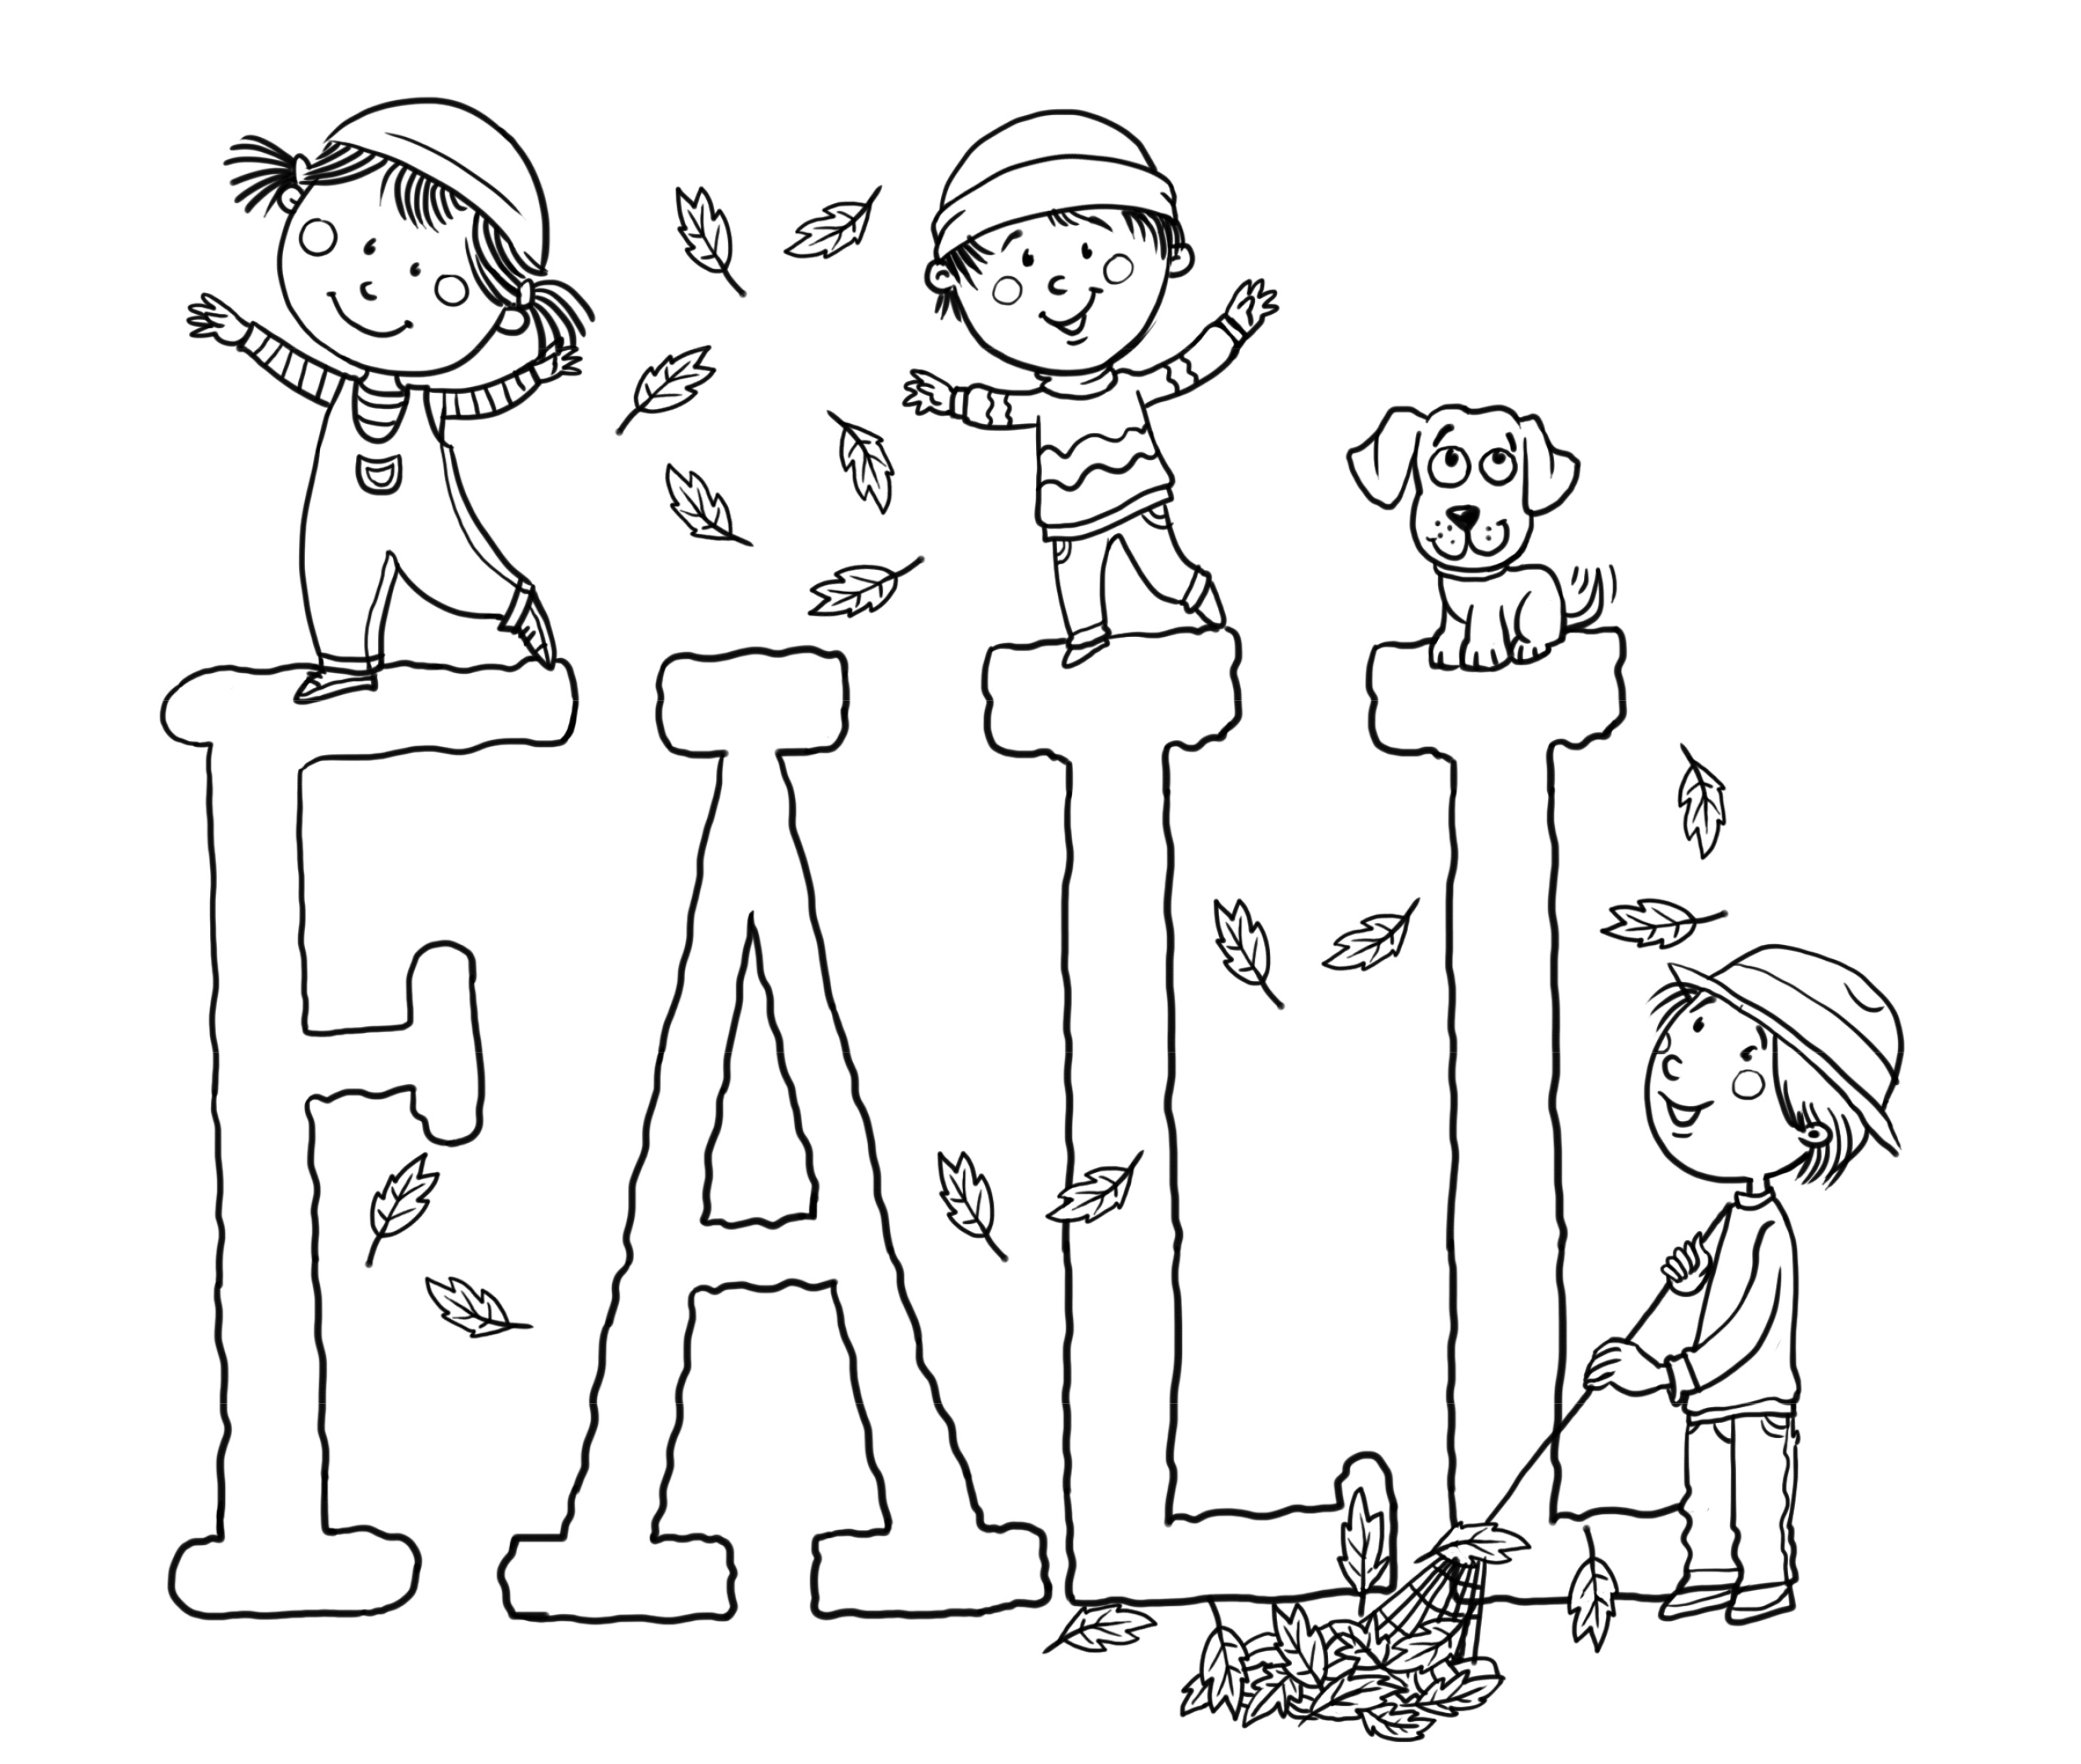 Free Printable Fall Coloring Pages For Kids - Best Coloring Pages - Fall Printable Coloring Pages Free